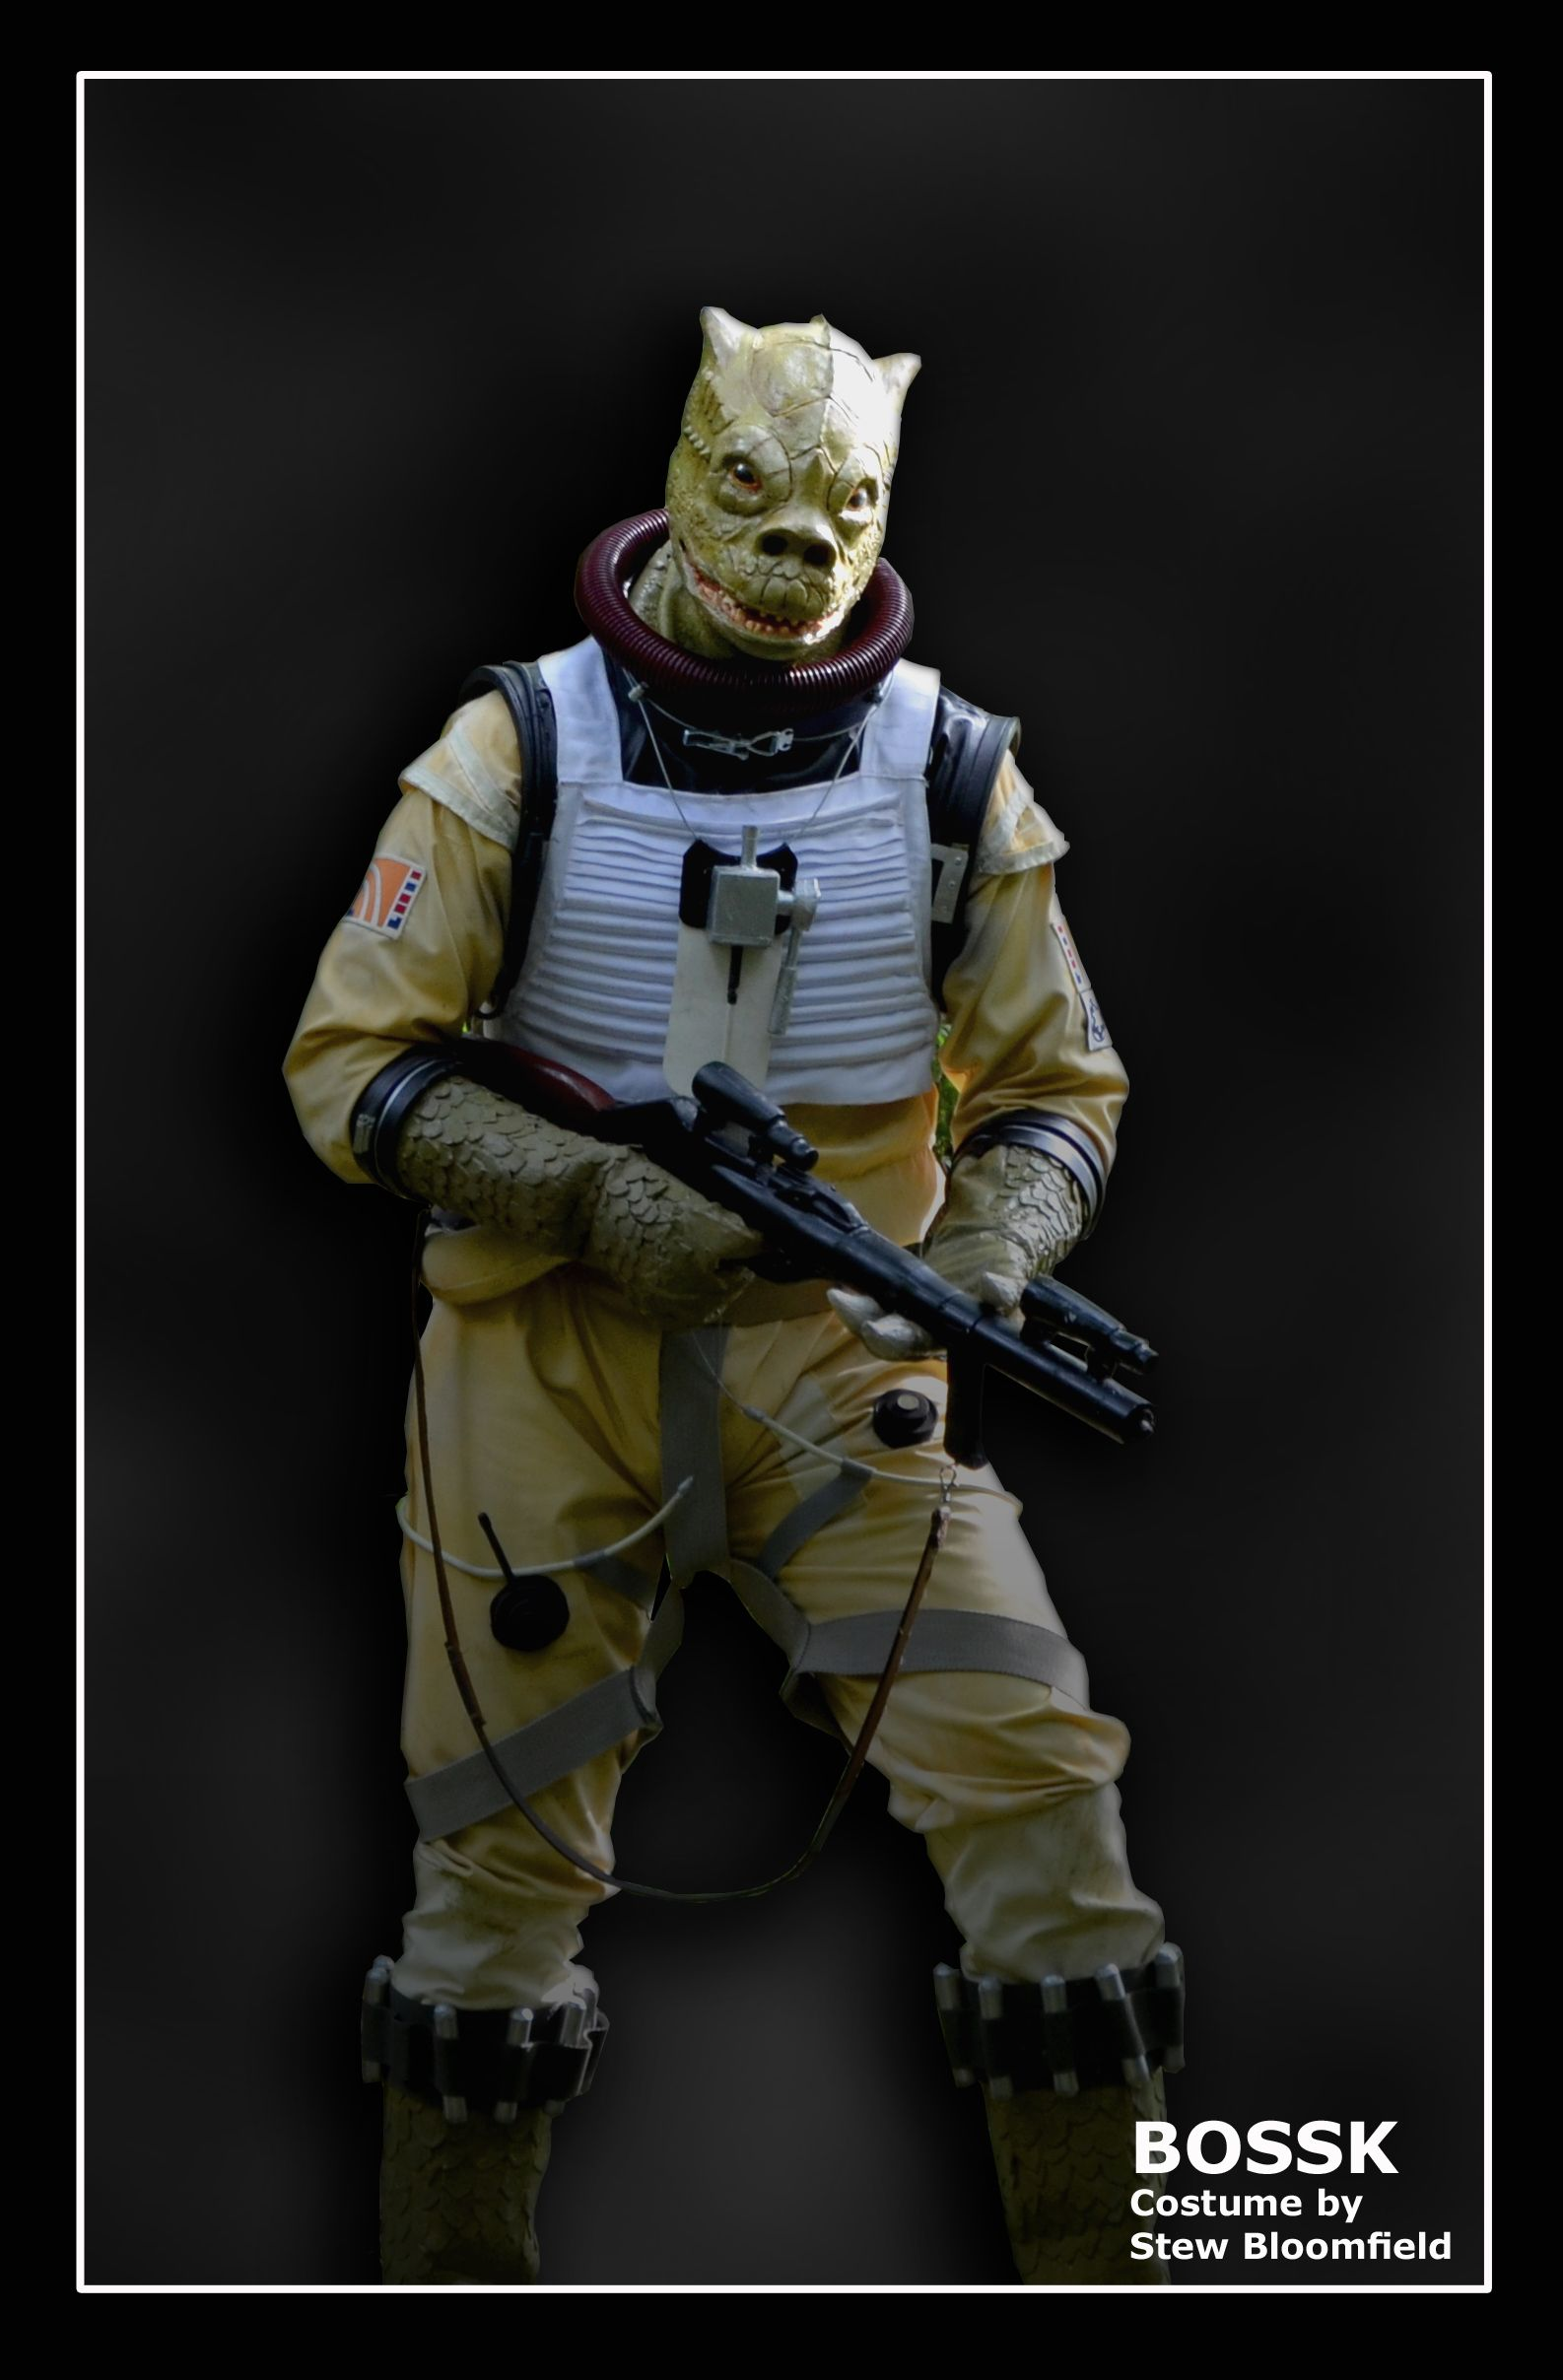 Pin By Stew On Bossk Costume Star Wars Ep V Star Wars